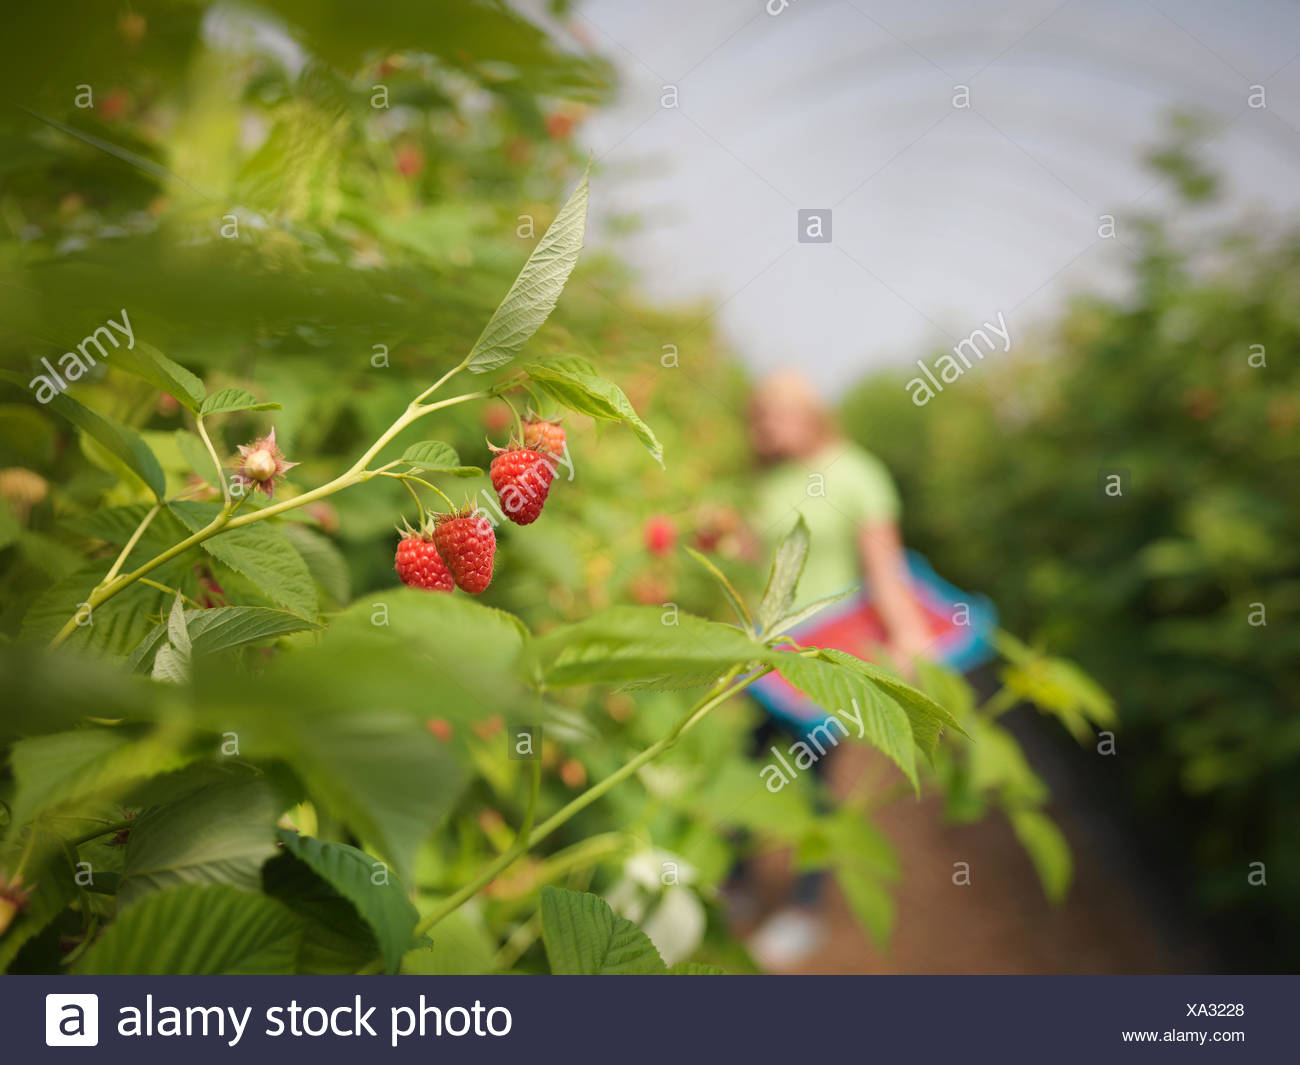 Worker picking raspberries in fruit farm, close up - Stock Image